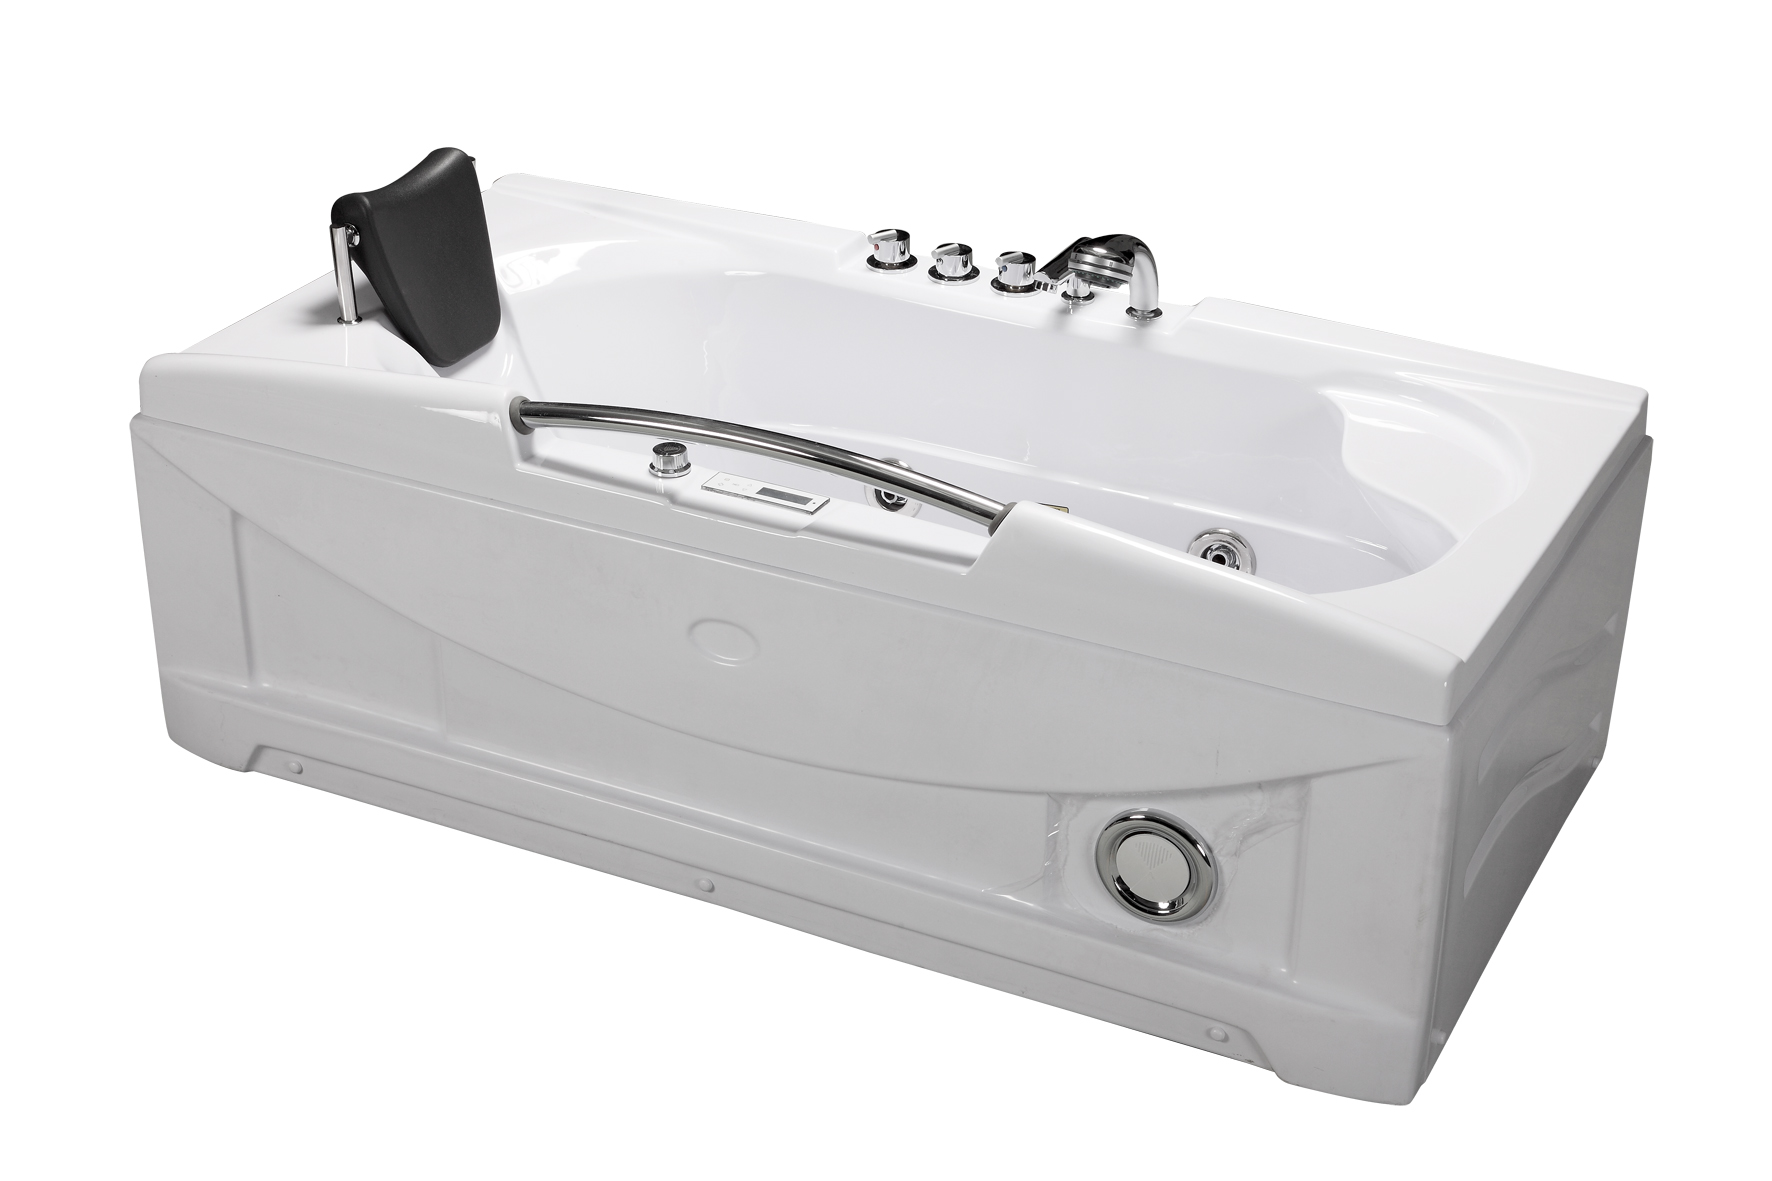 Jacuzzi Whirlpool Bathtub Bath Spa Hot Tub 19 Massage Air